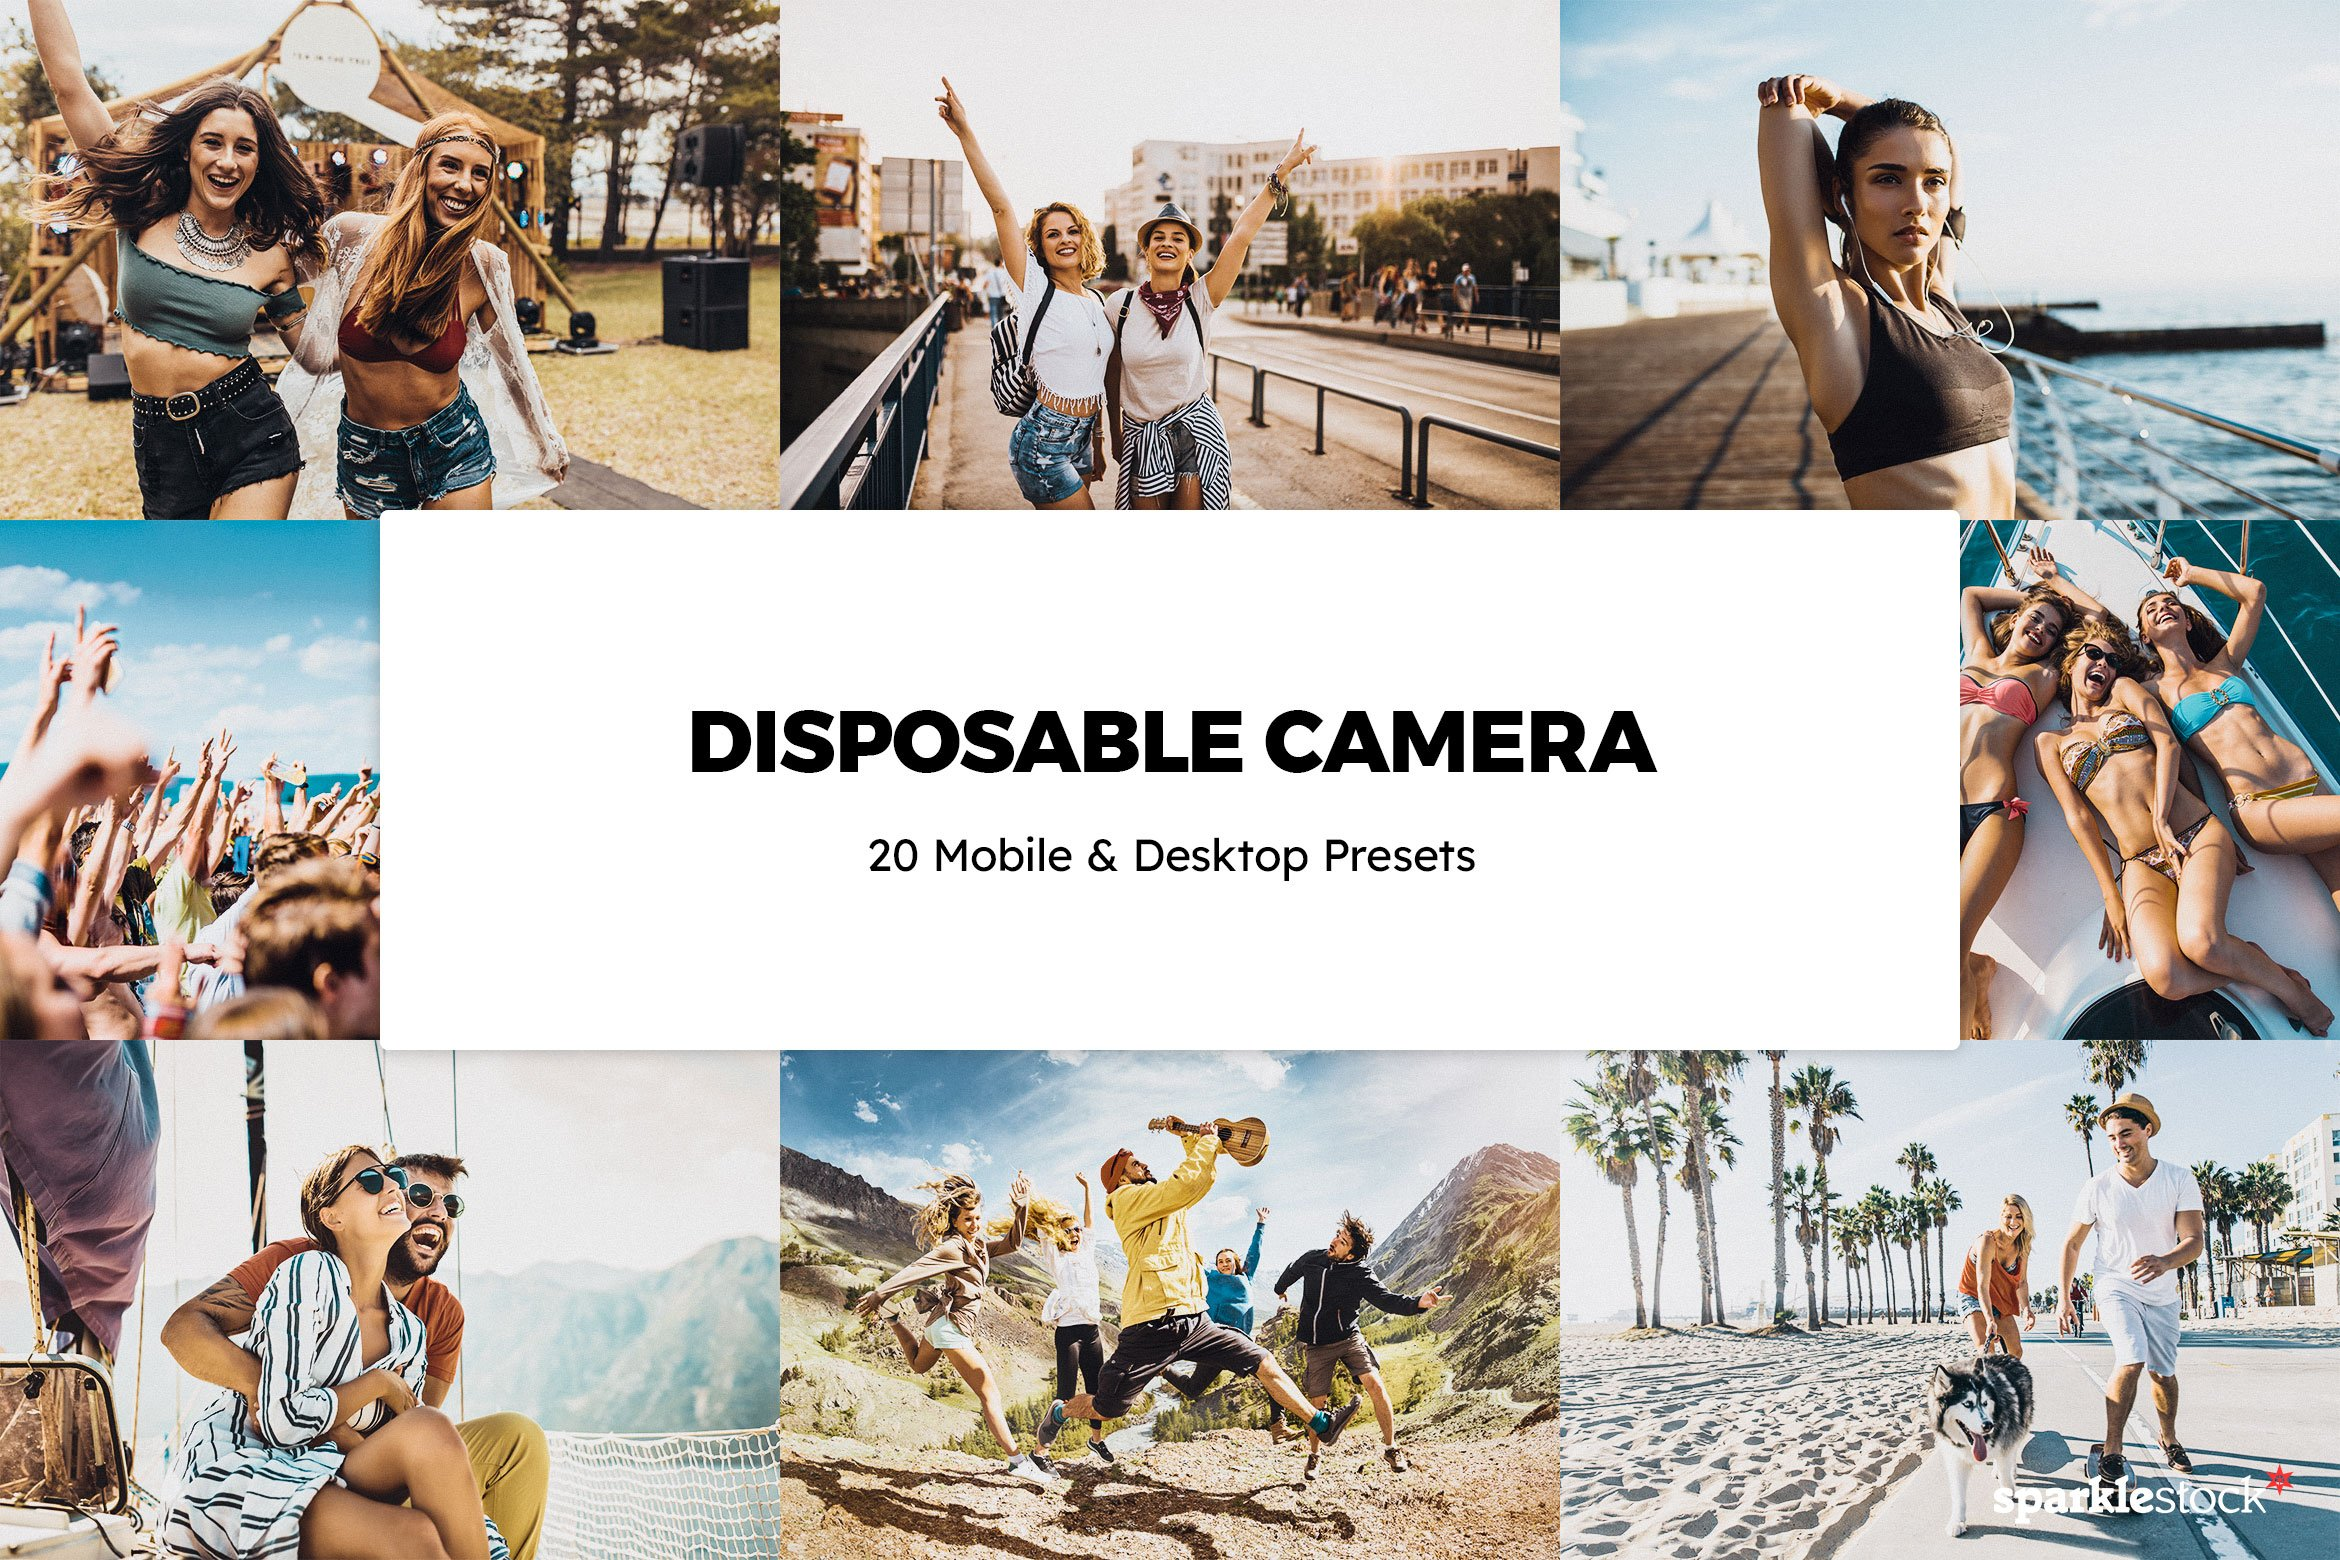 8 Free Disposable Camera Lightroom Presets and LUTs